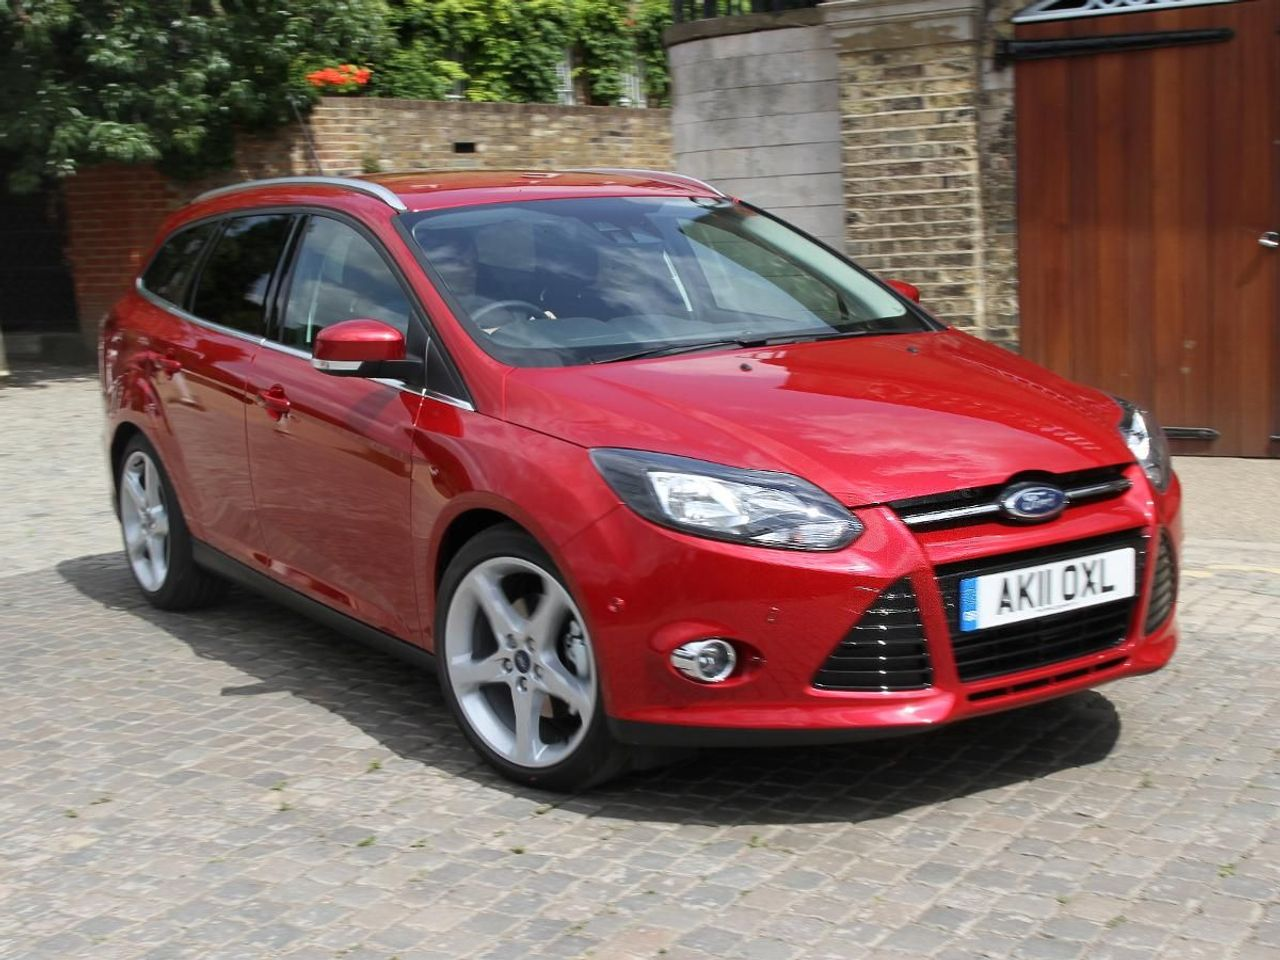 Ford Focus review - Estate (2011 - ) | Auto Trader UK